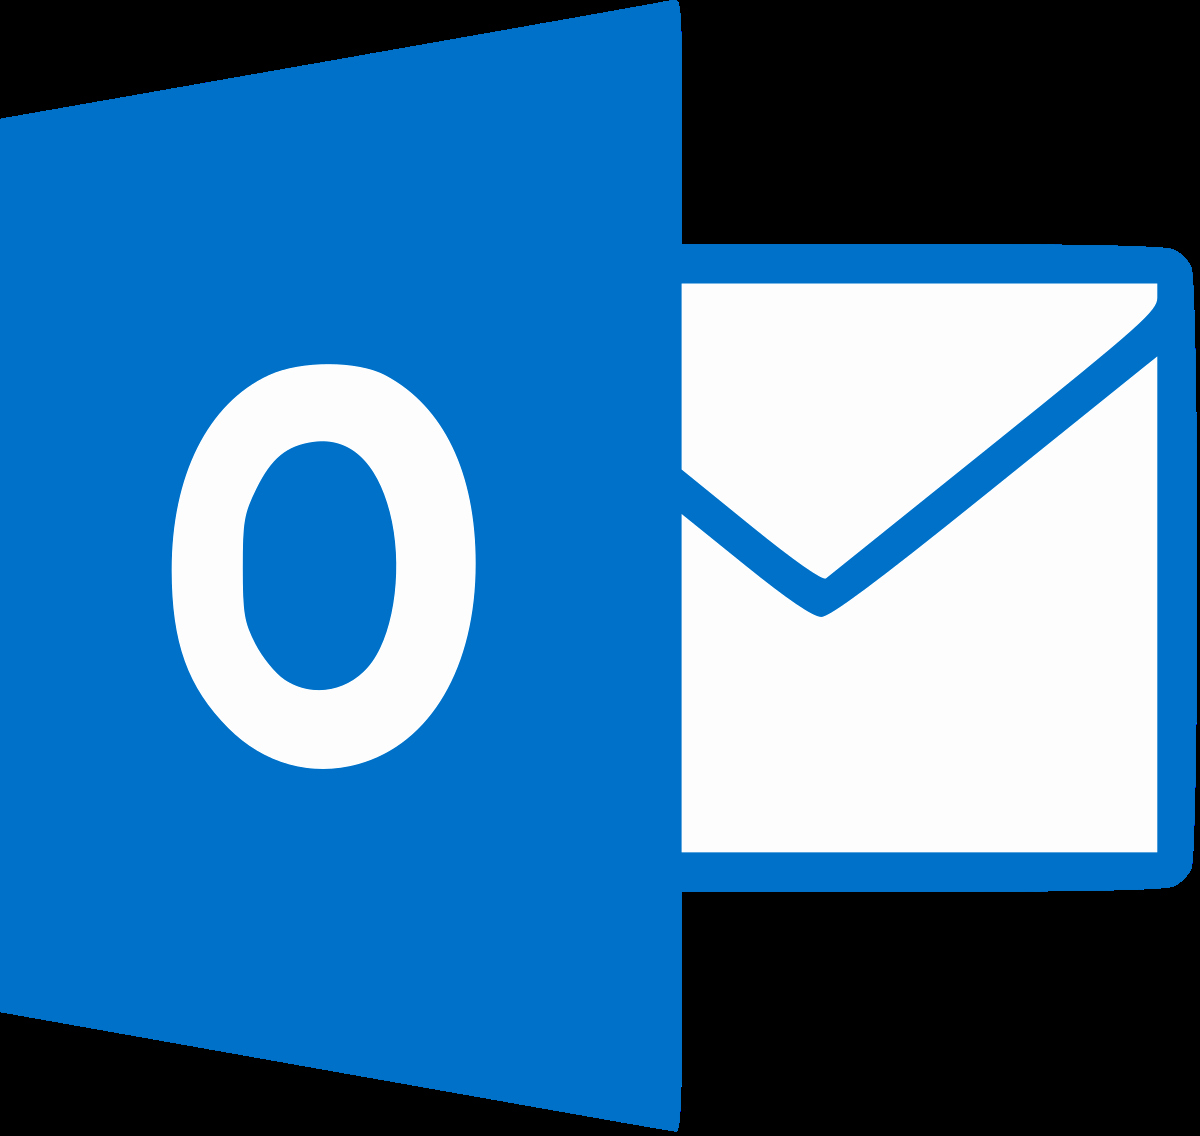 Microsoft Office Outlook Email Login Beautiful Microsoft Outlook